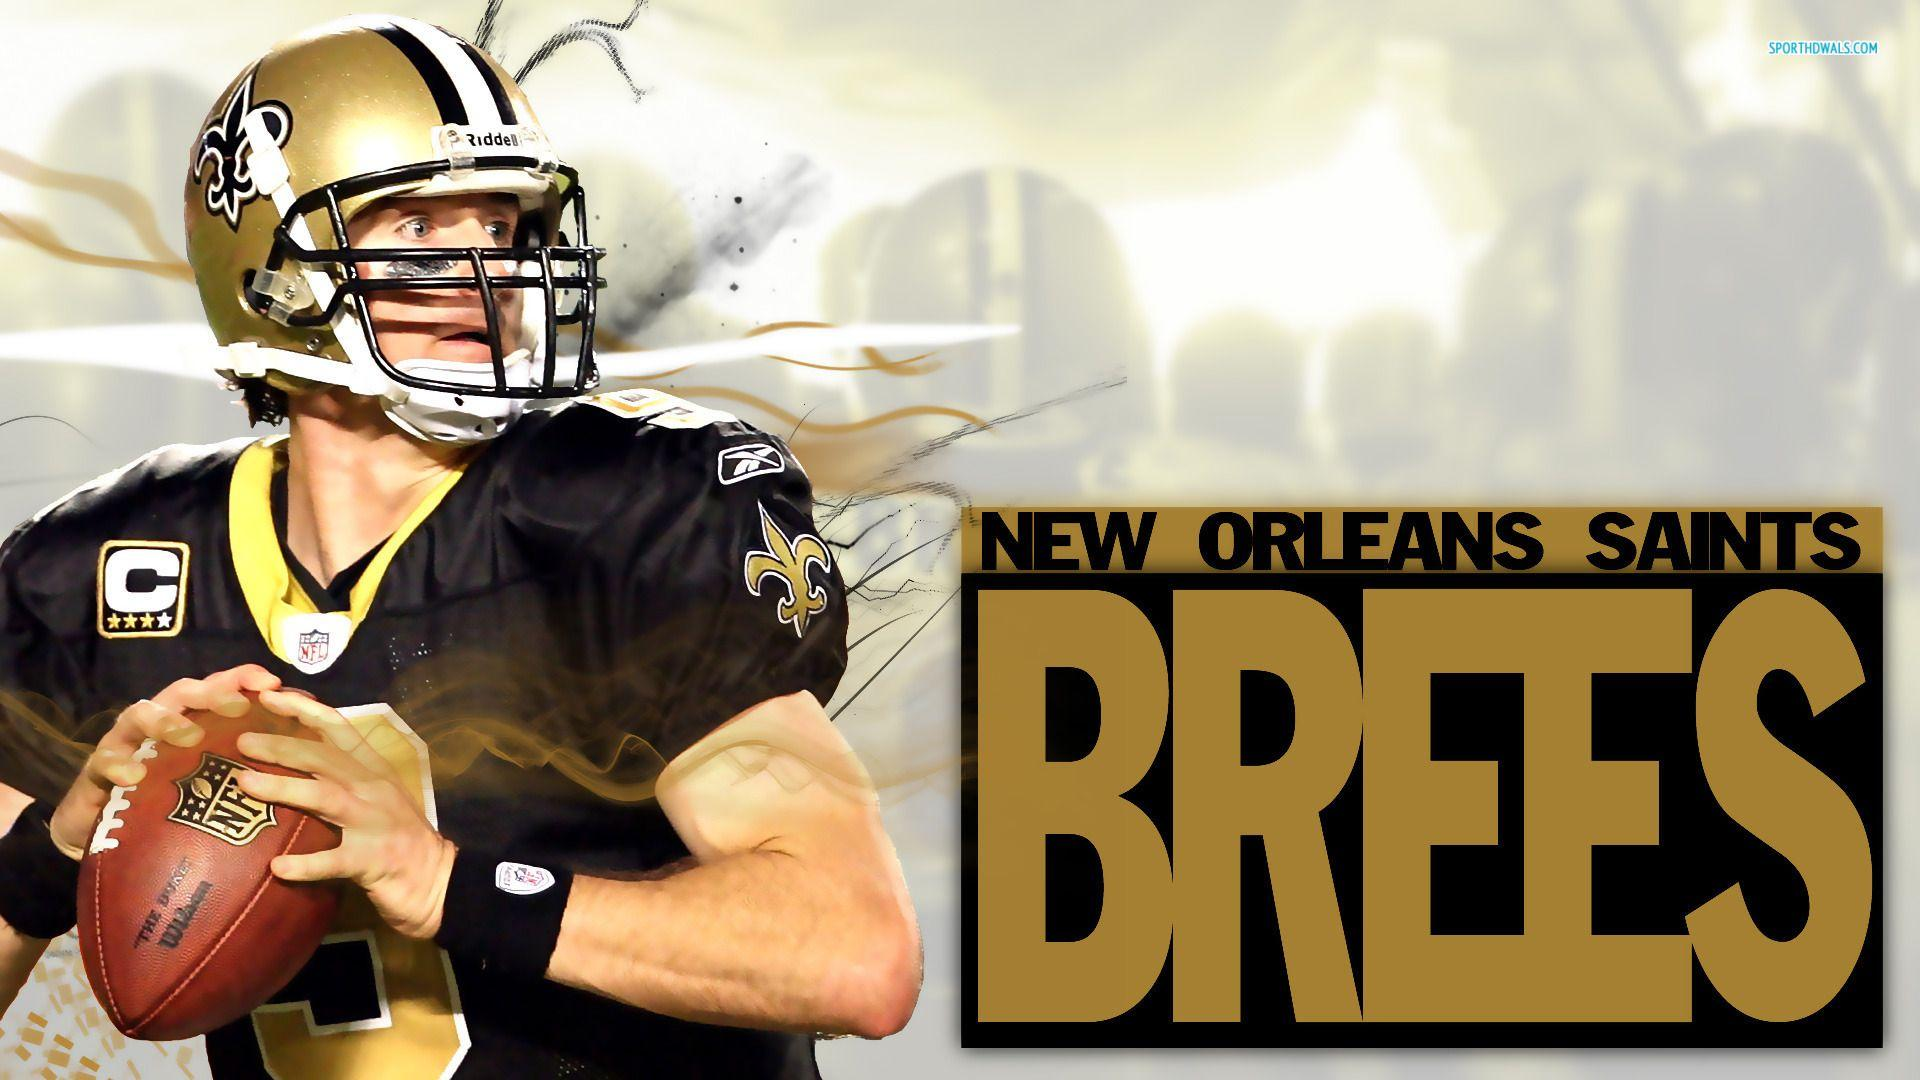 Drew Brees HD Wallpapers